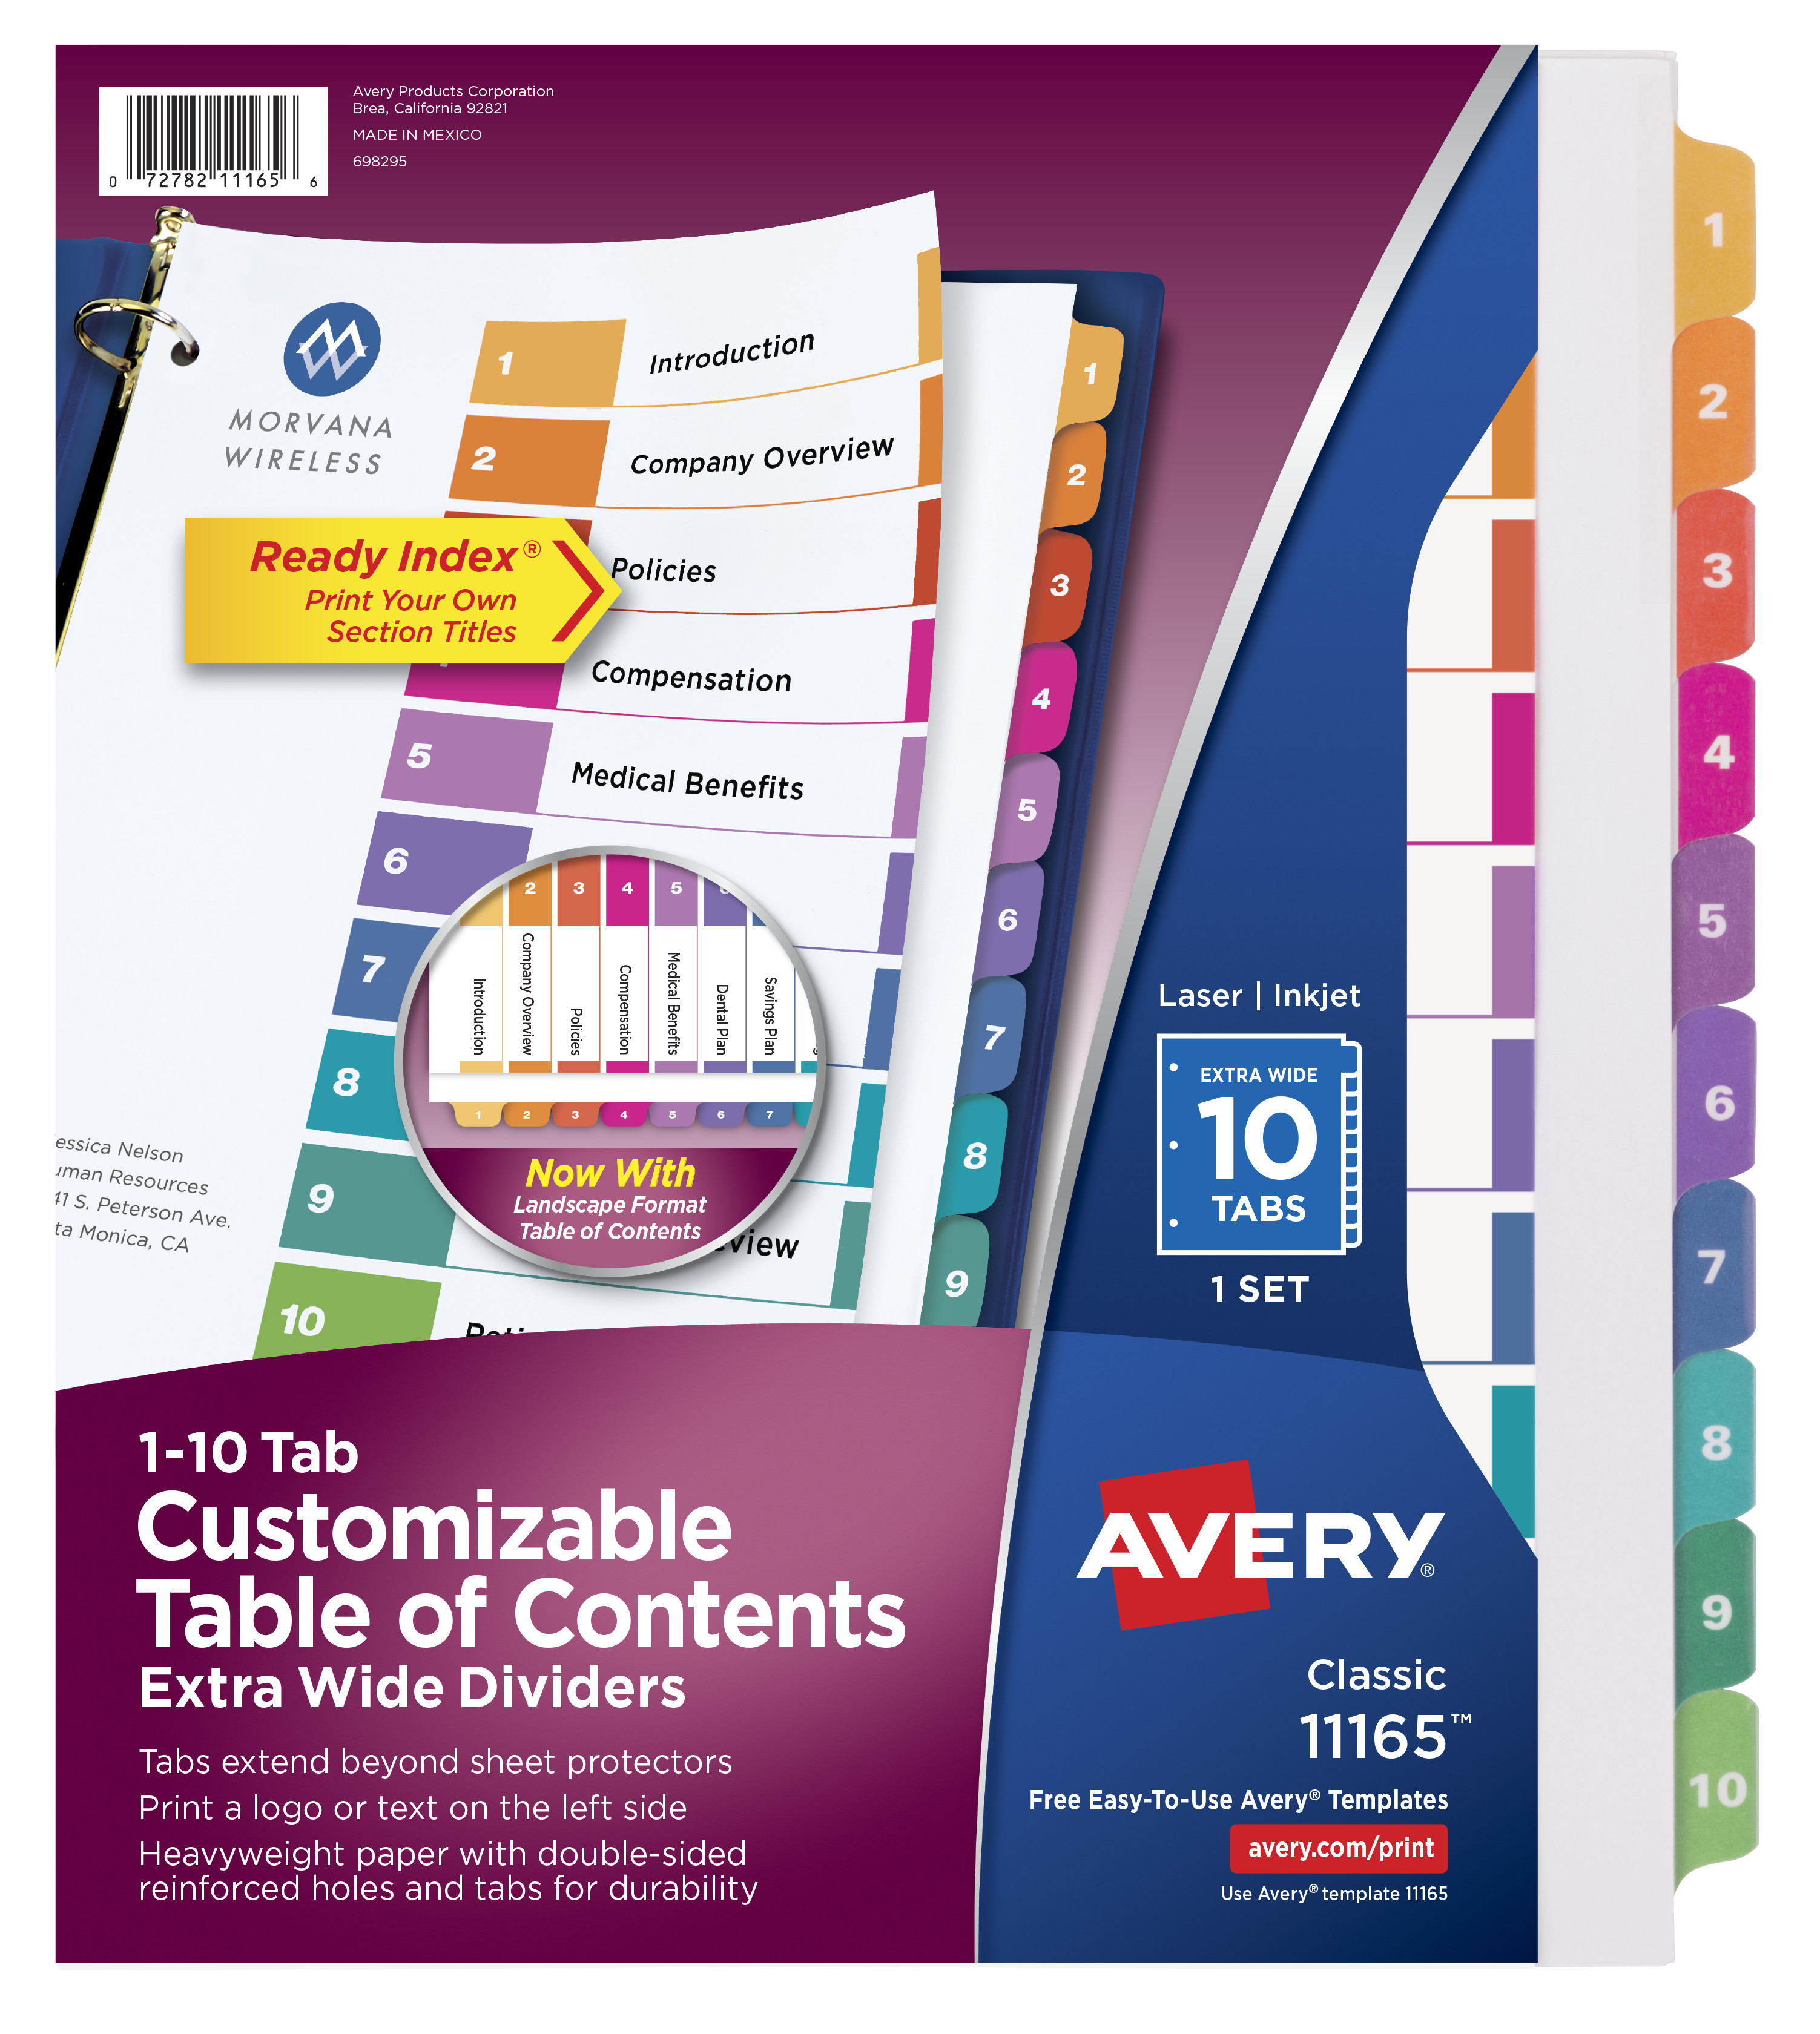 Avery Customizable Table of Contents Extra-Wide Dividers, Ready Index Printable Section Titles, Preprinted 1-10 Multicolor Tabs, 1 Set (11165)